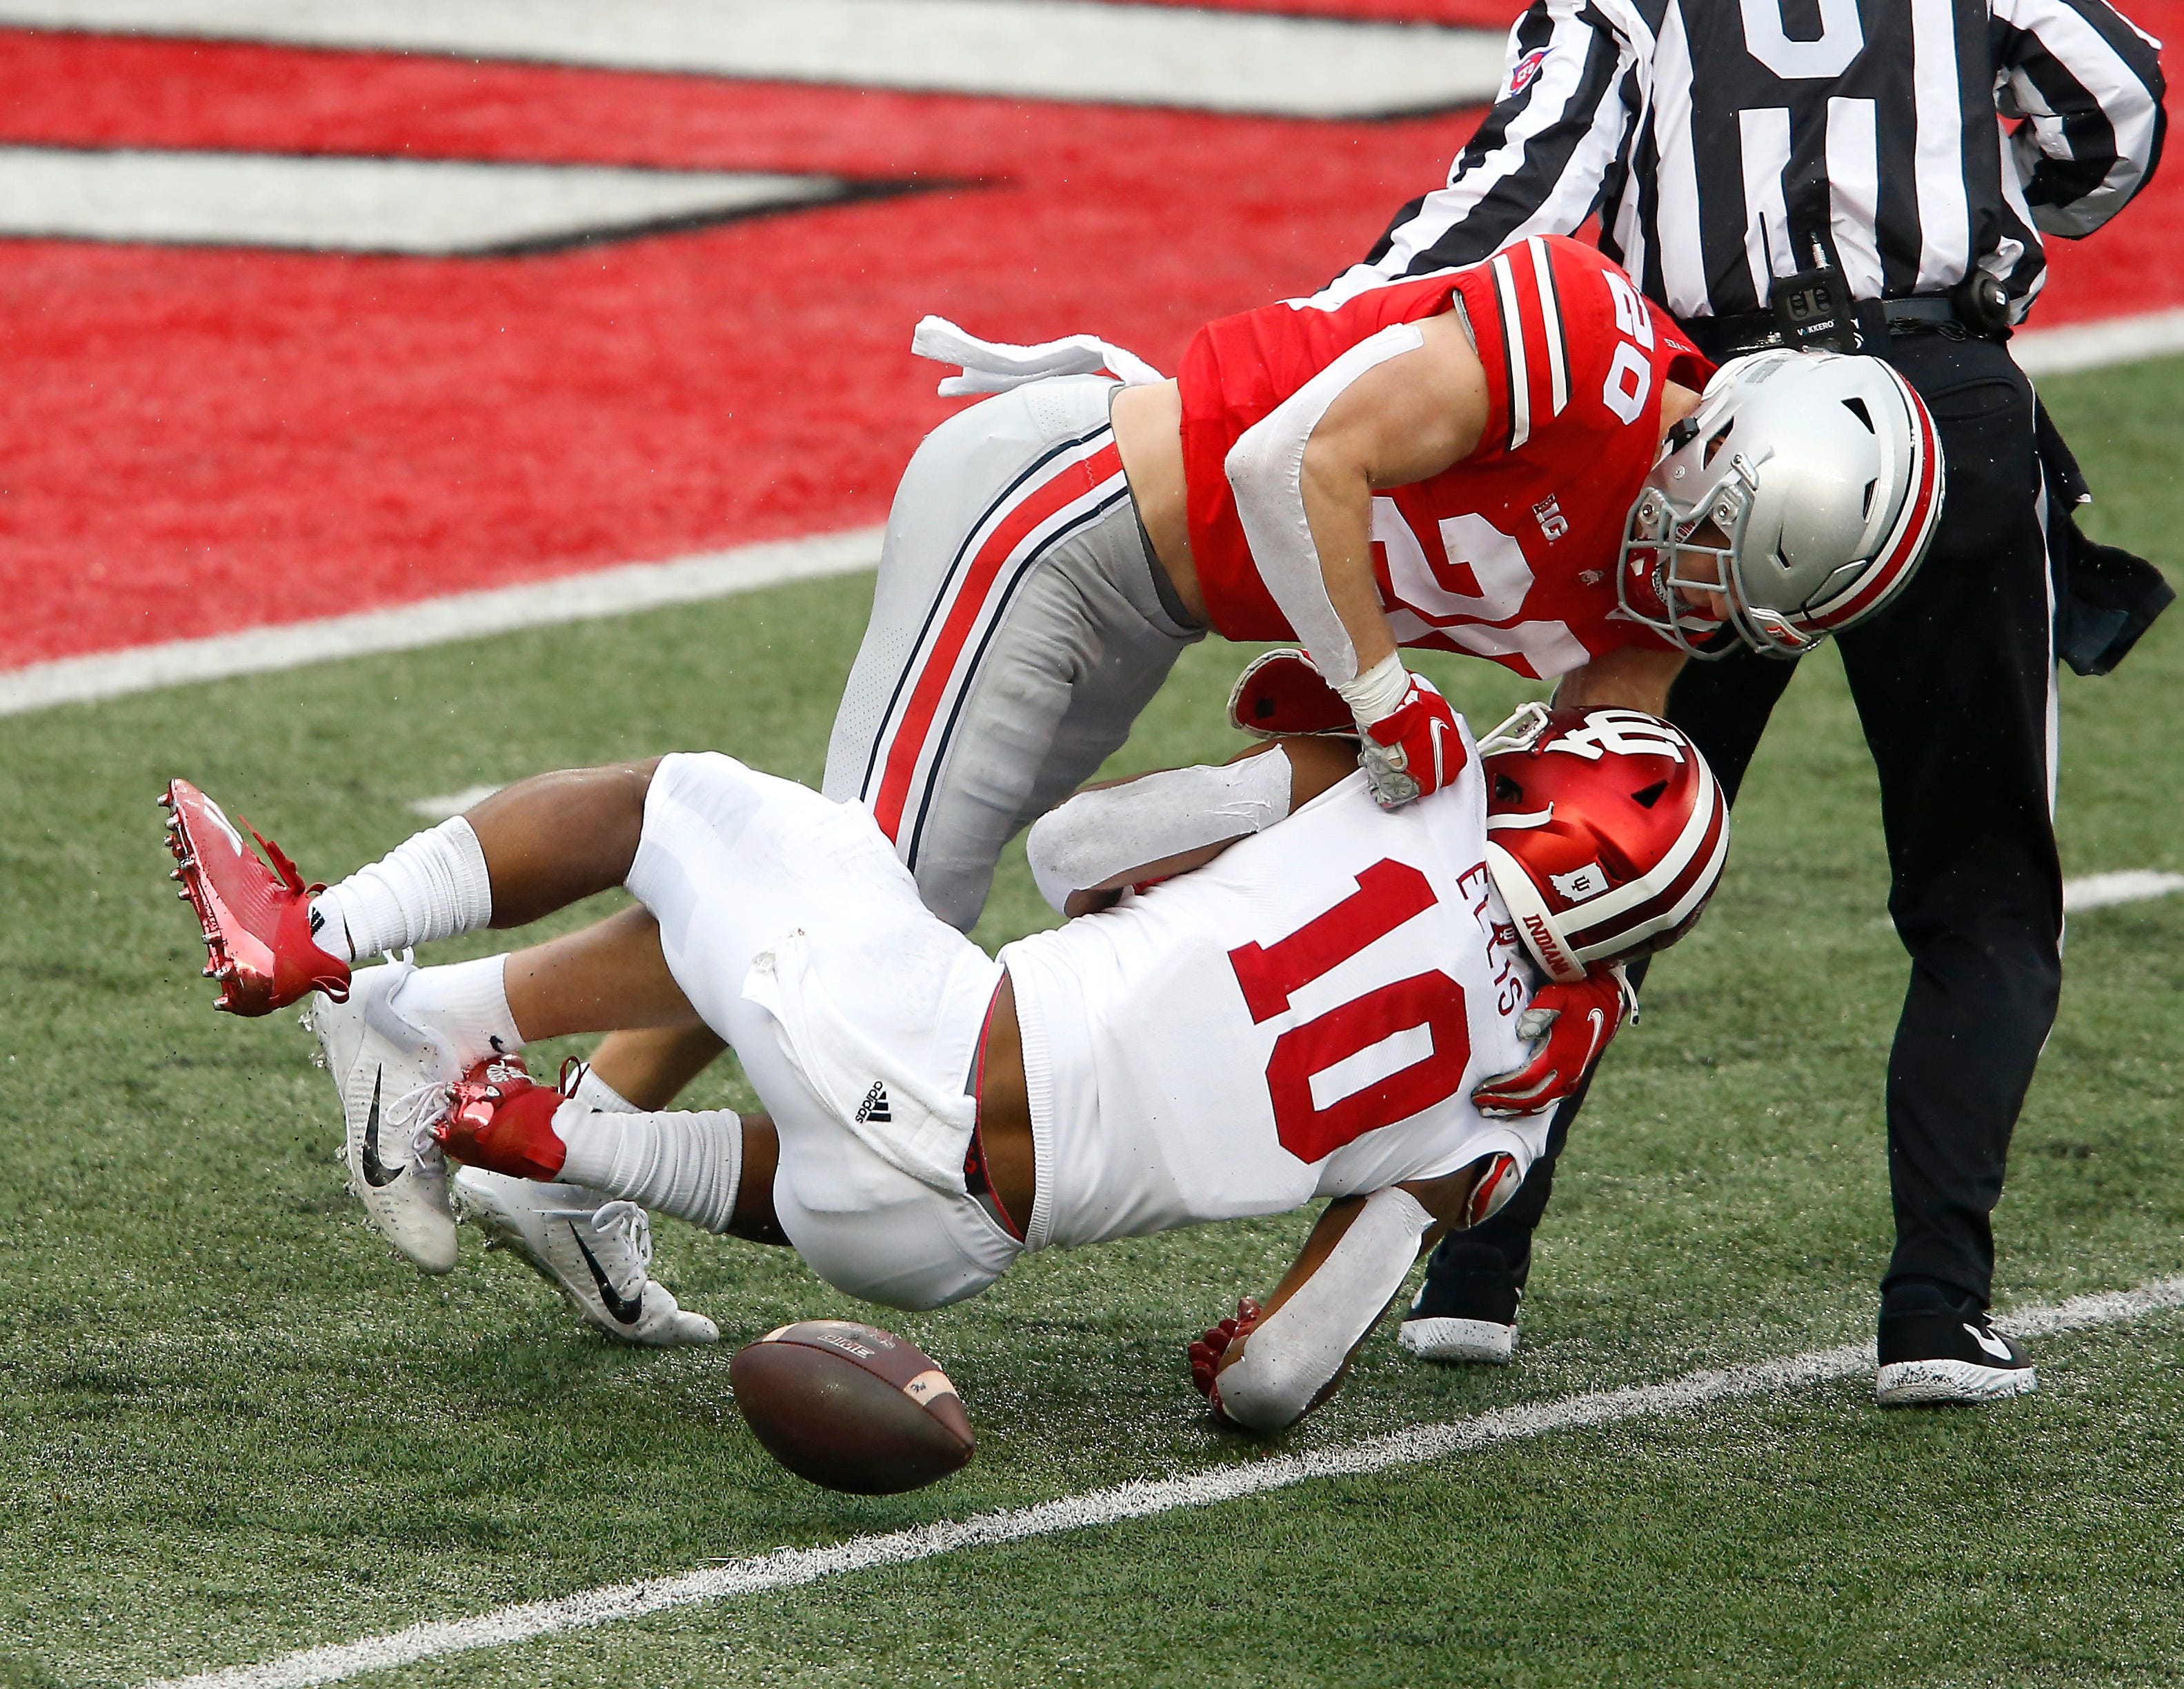 In loss to No. 3 Ohio State, Indiana proved that this season it is no fluke